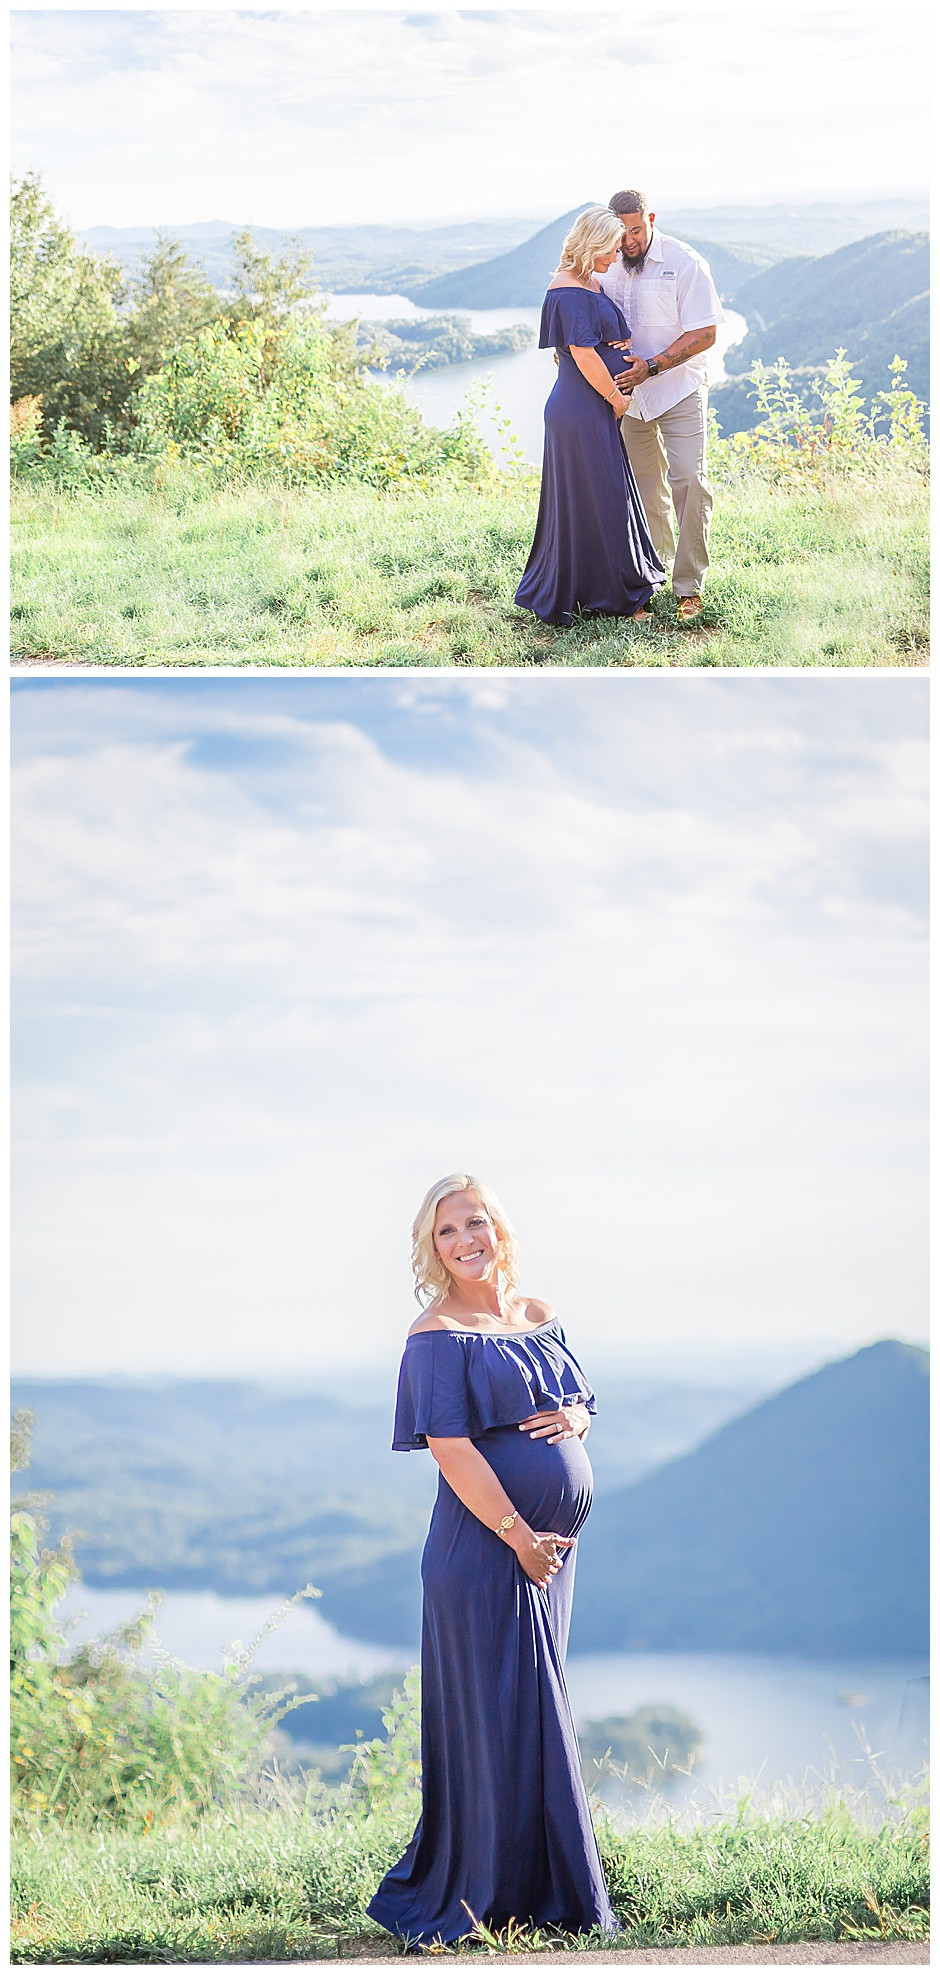 Chattanooga Maternity Photographer East Ivy Photography at Ocoee River, Chattanooga maternity photos, couples portrait, mountain vista, East Ivy Photography, Cleveland TN Maternity photographer